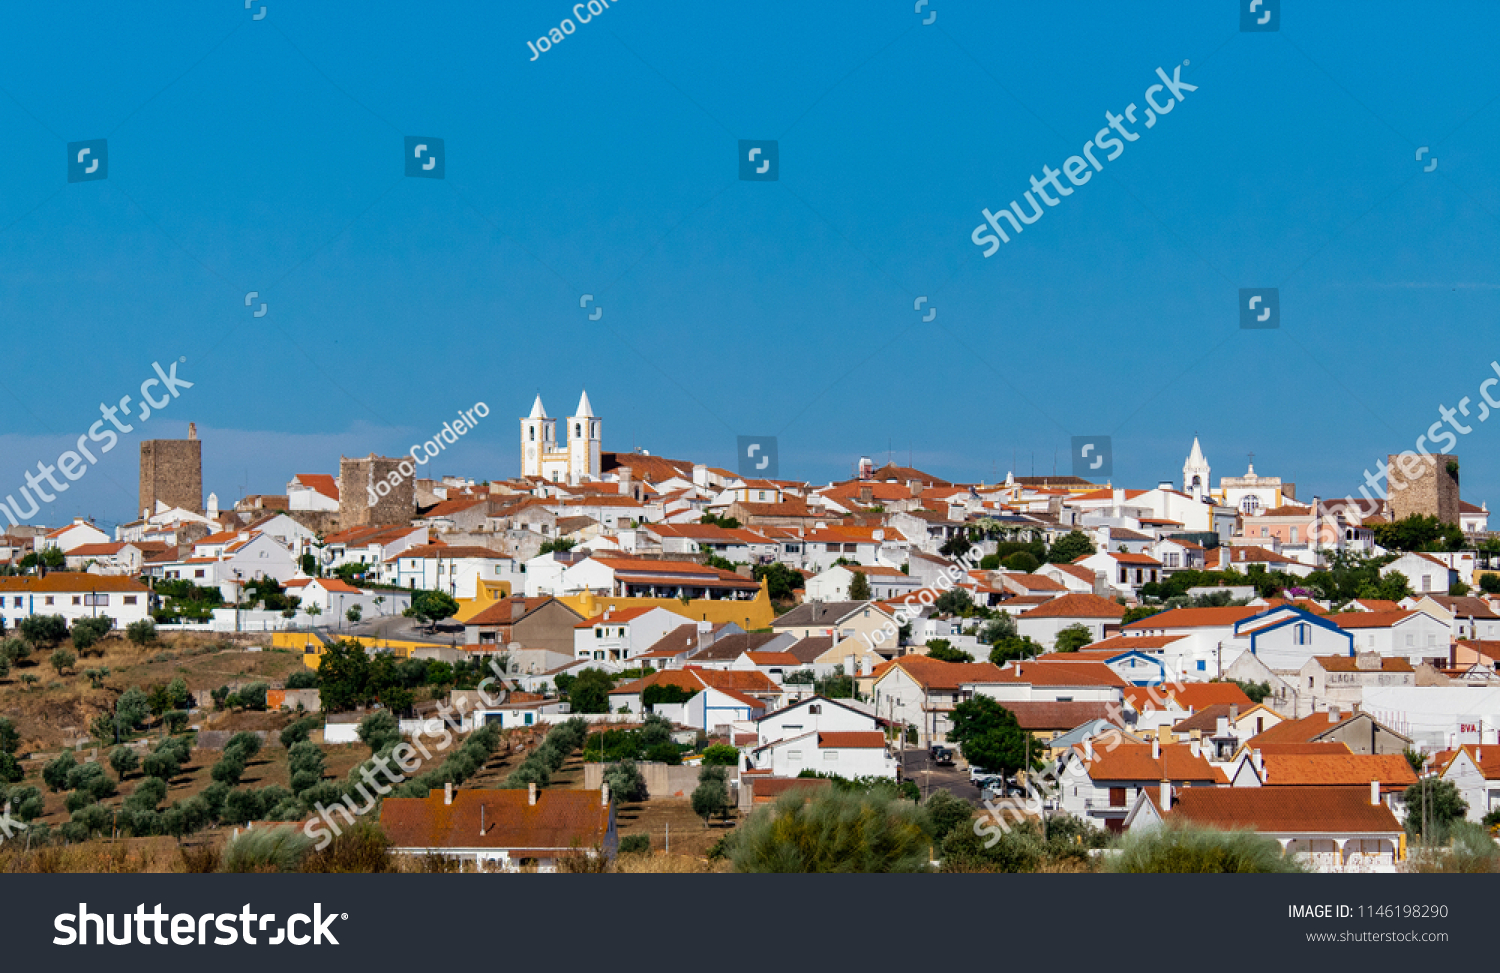 Avis Malaga Village Avis Alentejo Portugal Stock Photo Edit Now 1146198290